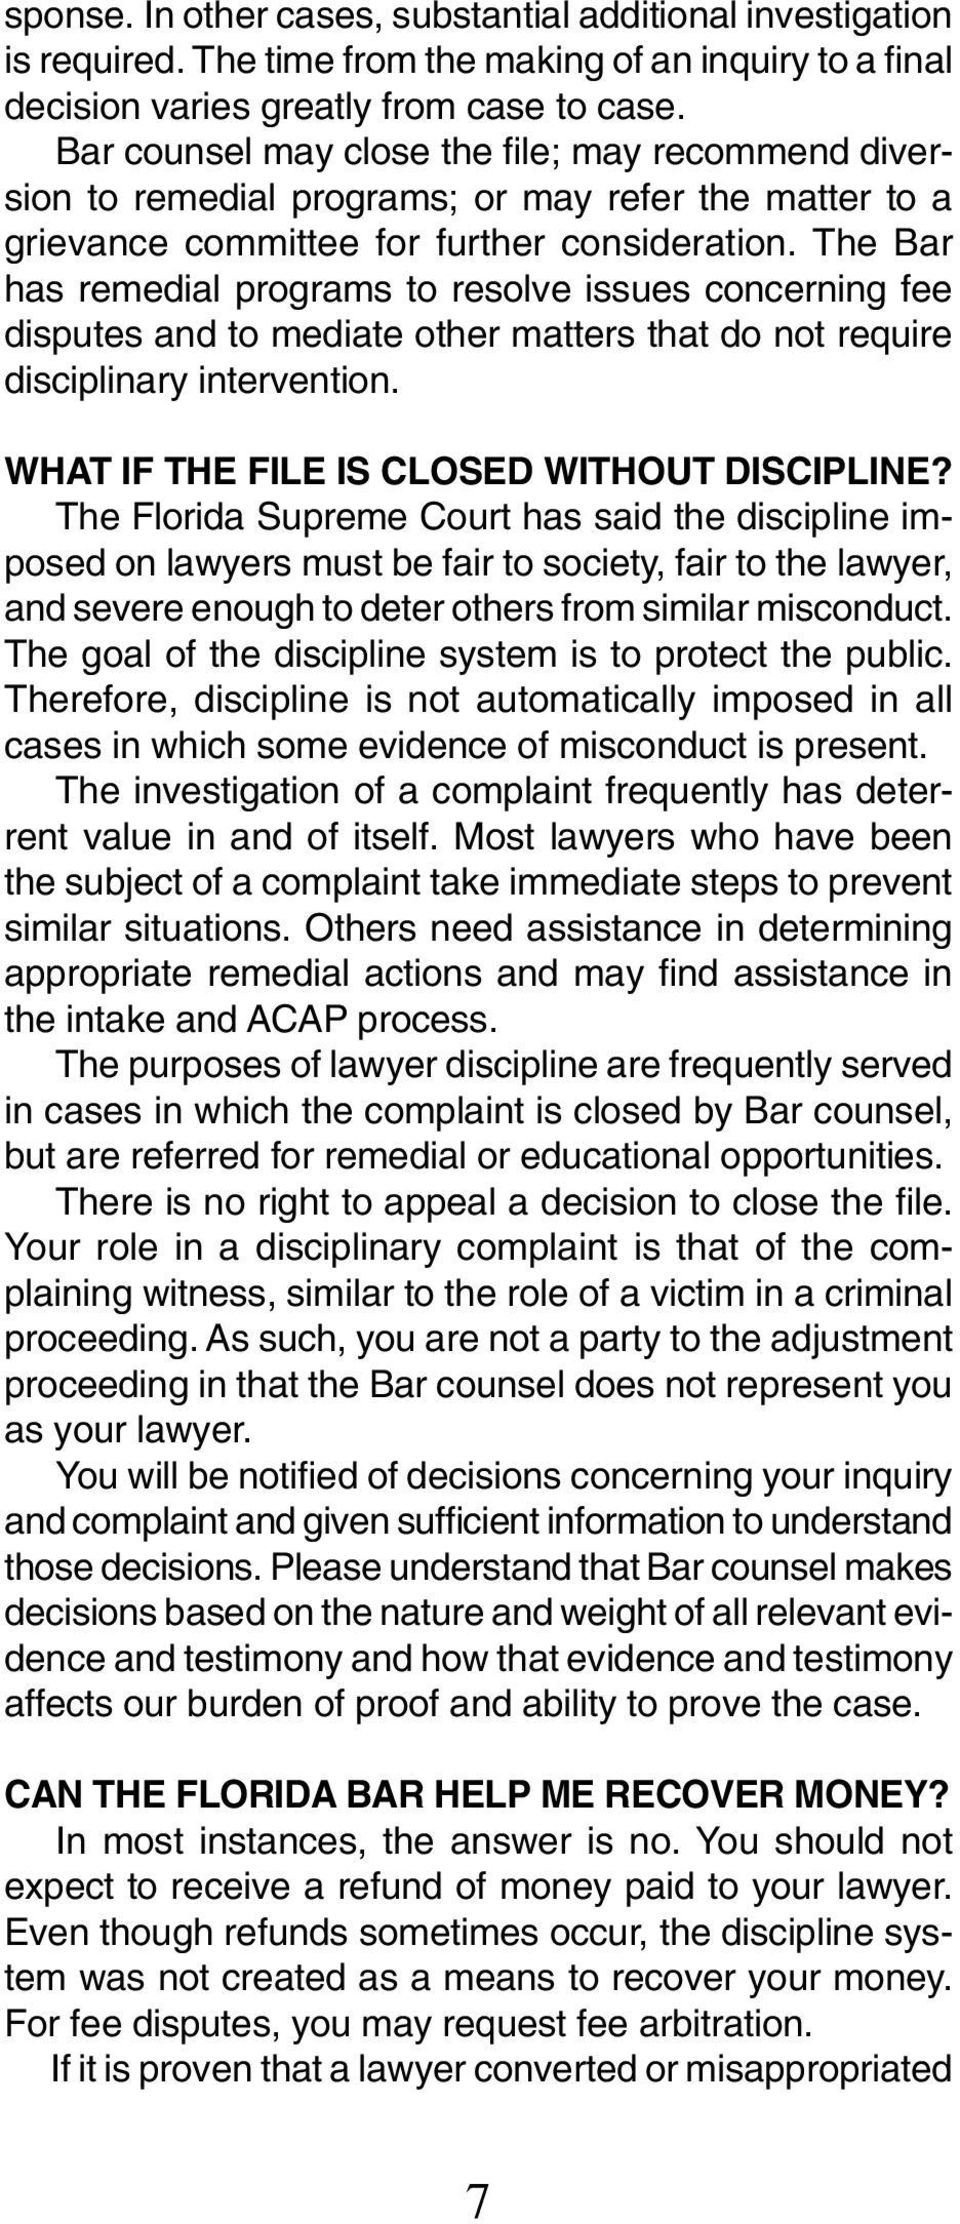 The Bar has remedial programs to resolve issues concerning fee disputes and to mediate other matters that do not require disciplinary intervention. WHAT IF THE FILE IS CLOSED WITHOUT DISCIPLINE?